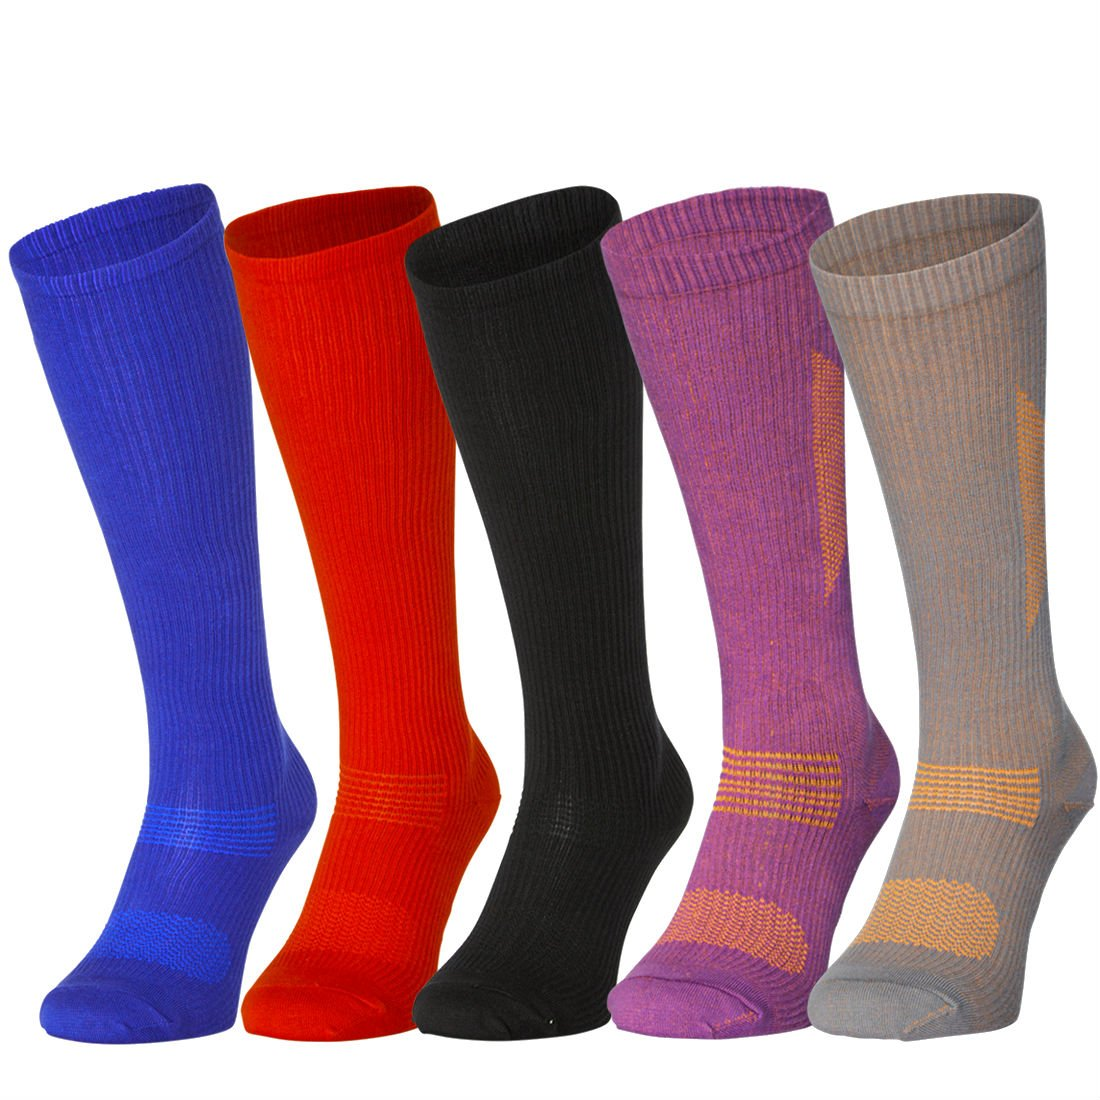 Organic Graduated Compression Socks (1 Pair Grey/Orange, US Women 8-10 // US Men 6.5-8.5)